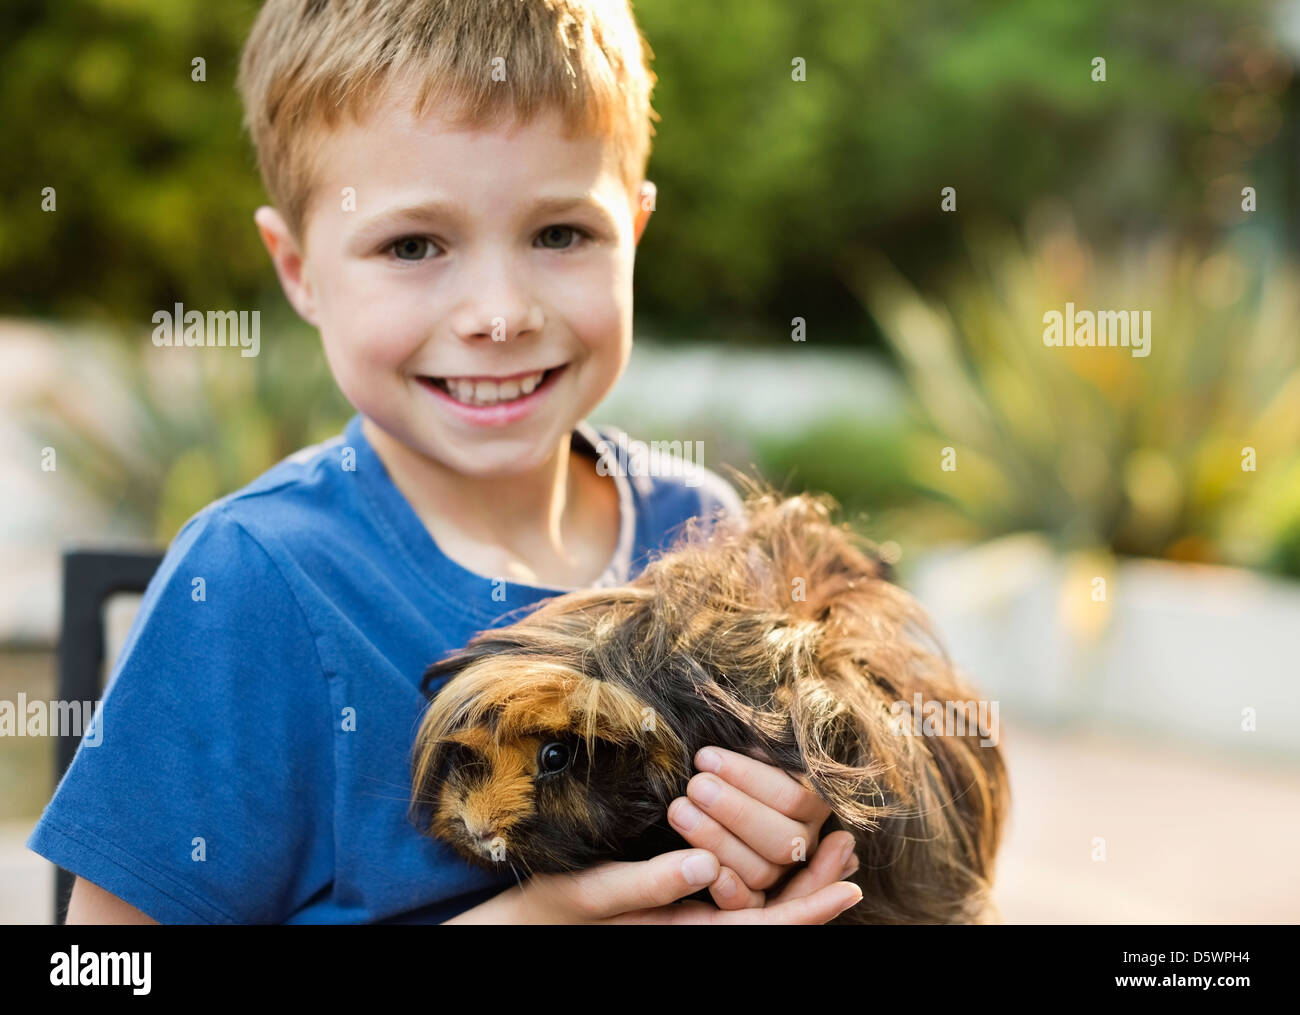 Smiling boy holding guinea pig outdoors - Stock Image